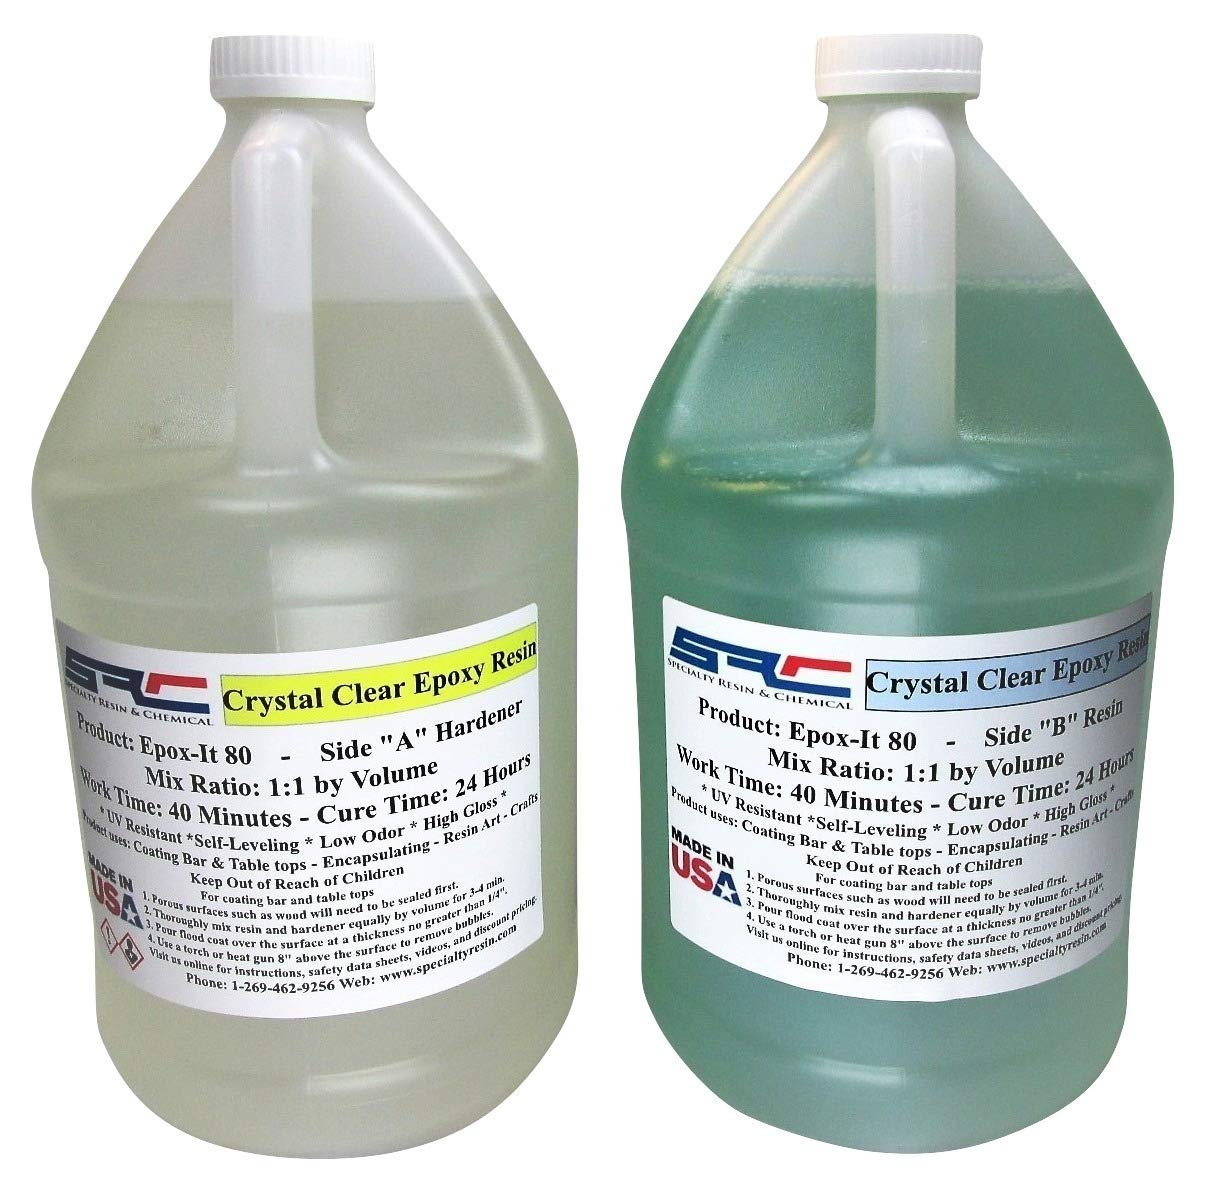 Clear Epoxy Resin for Bar Tops, Encapsulating, or Casting (2